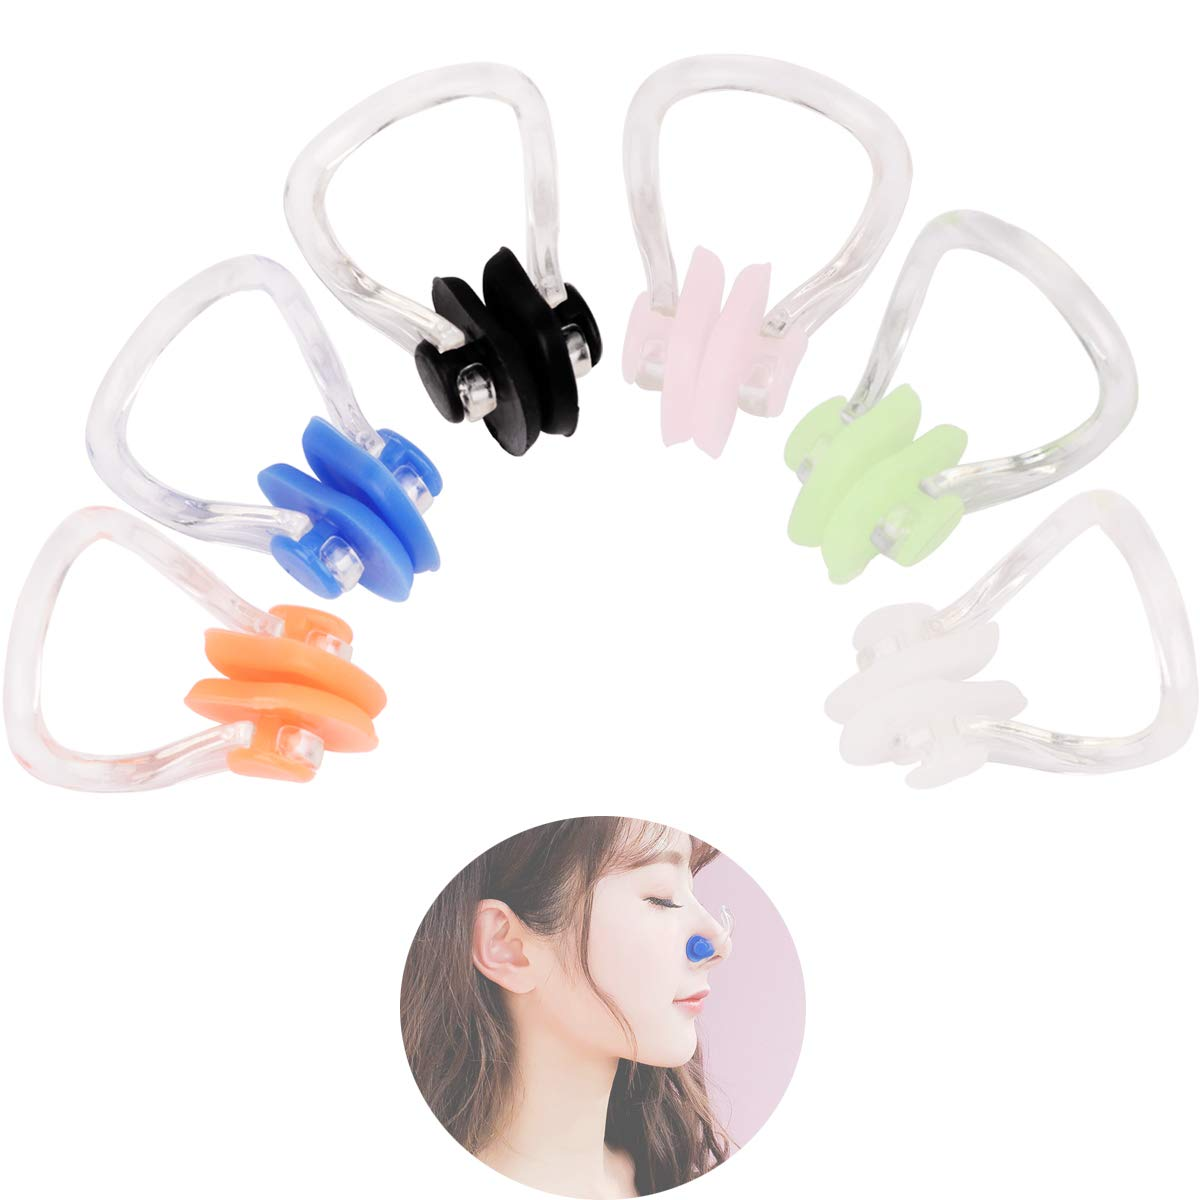 Kicosy 12 Pack Swimming Nose Clip Silicone Swimming Protector Diving Nose Clips Waterproof Swimming Nose Clips Swimming Supplies 6 Colors Comfortable Soft Latex for Kids and Adults